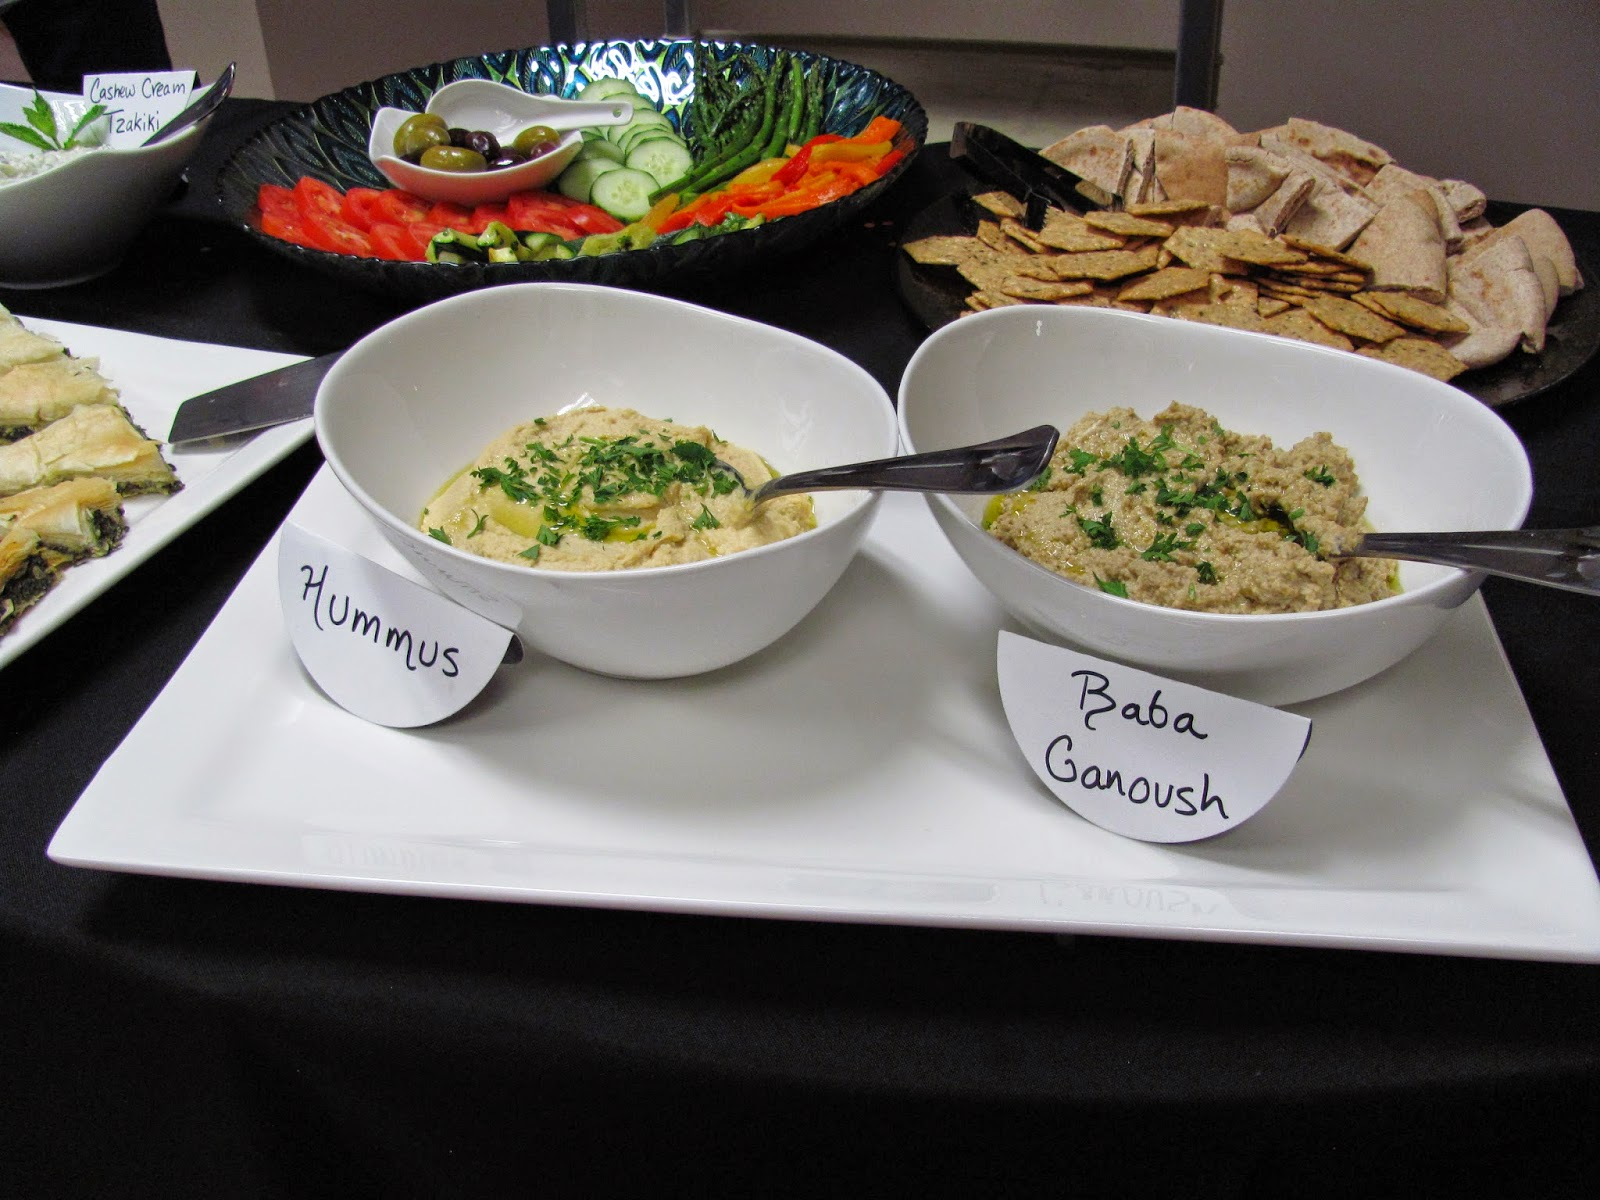 From Scratch Hummus and Baba Ganoush